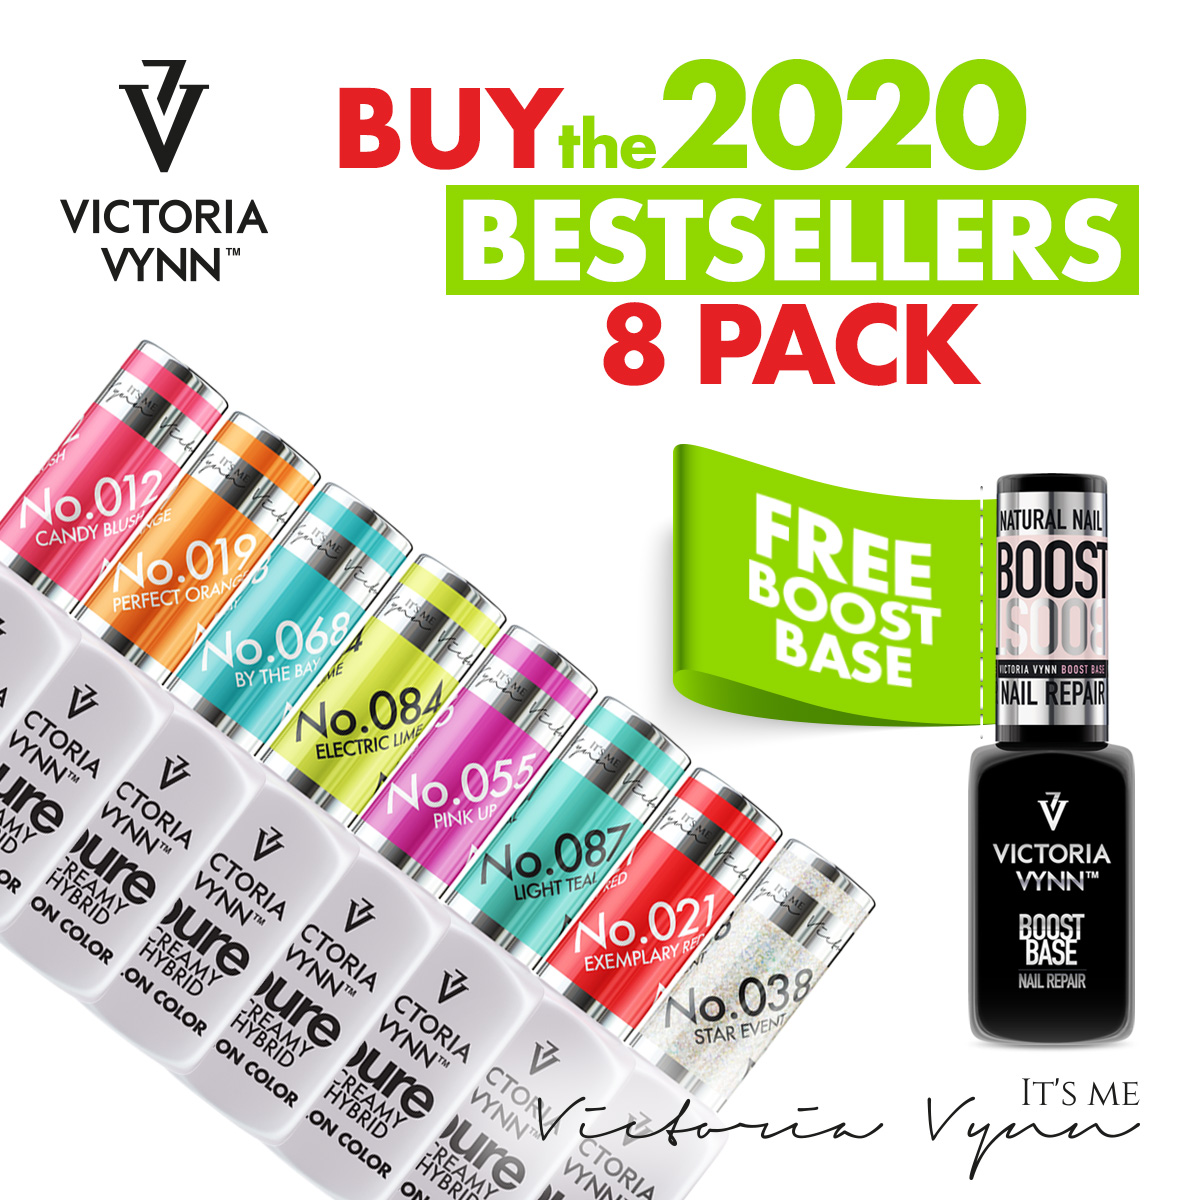 Pack 2020 Pure Best Sellers Victoria Vynn